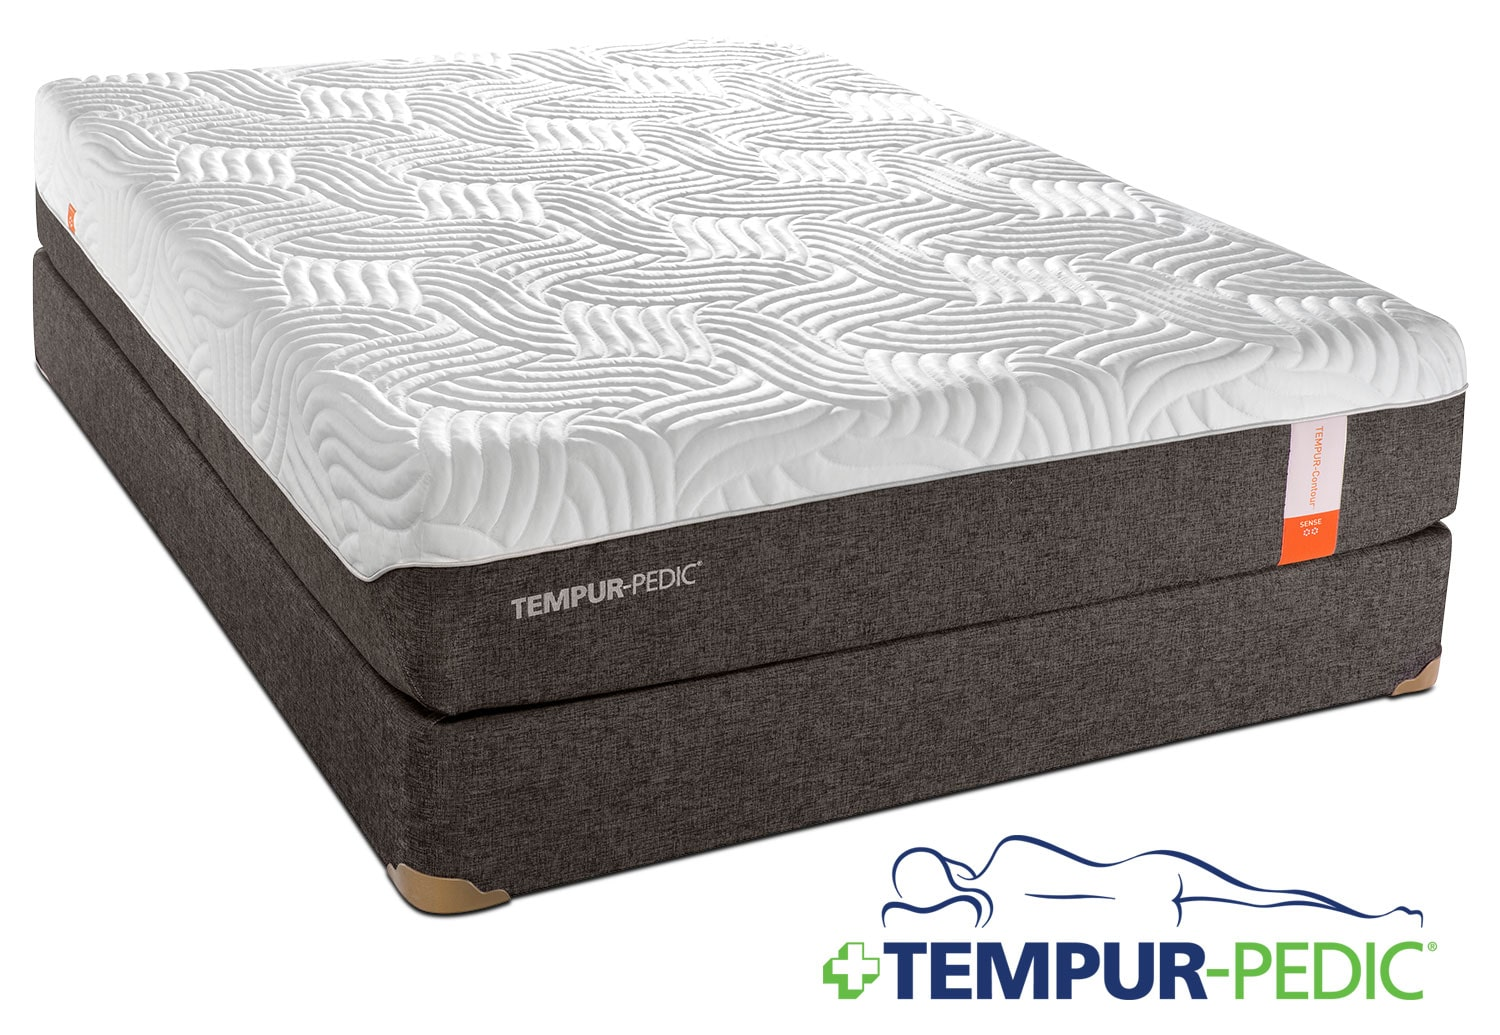 Tempur-Pedic Sense Queen Mattress/Boxspring Set